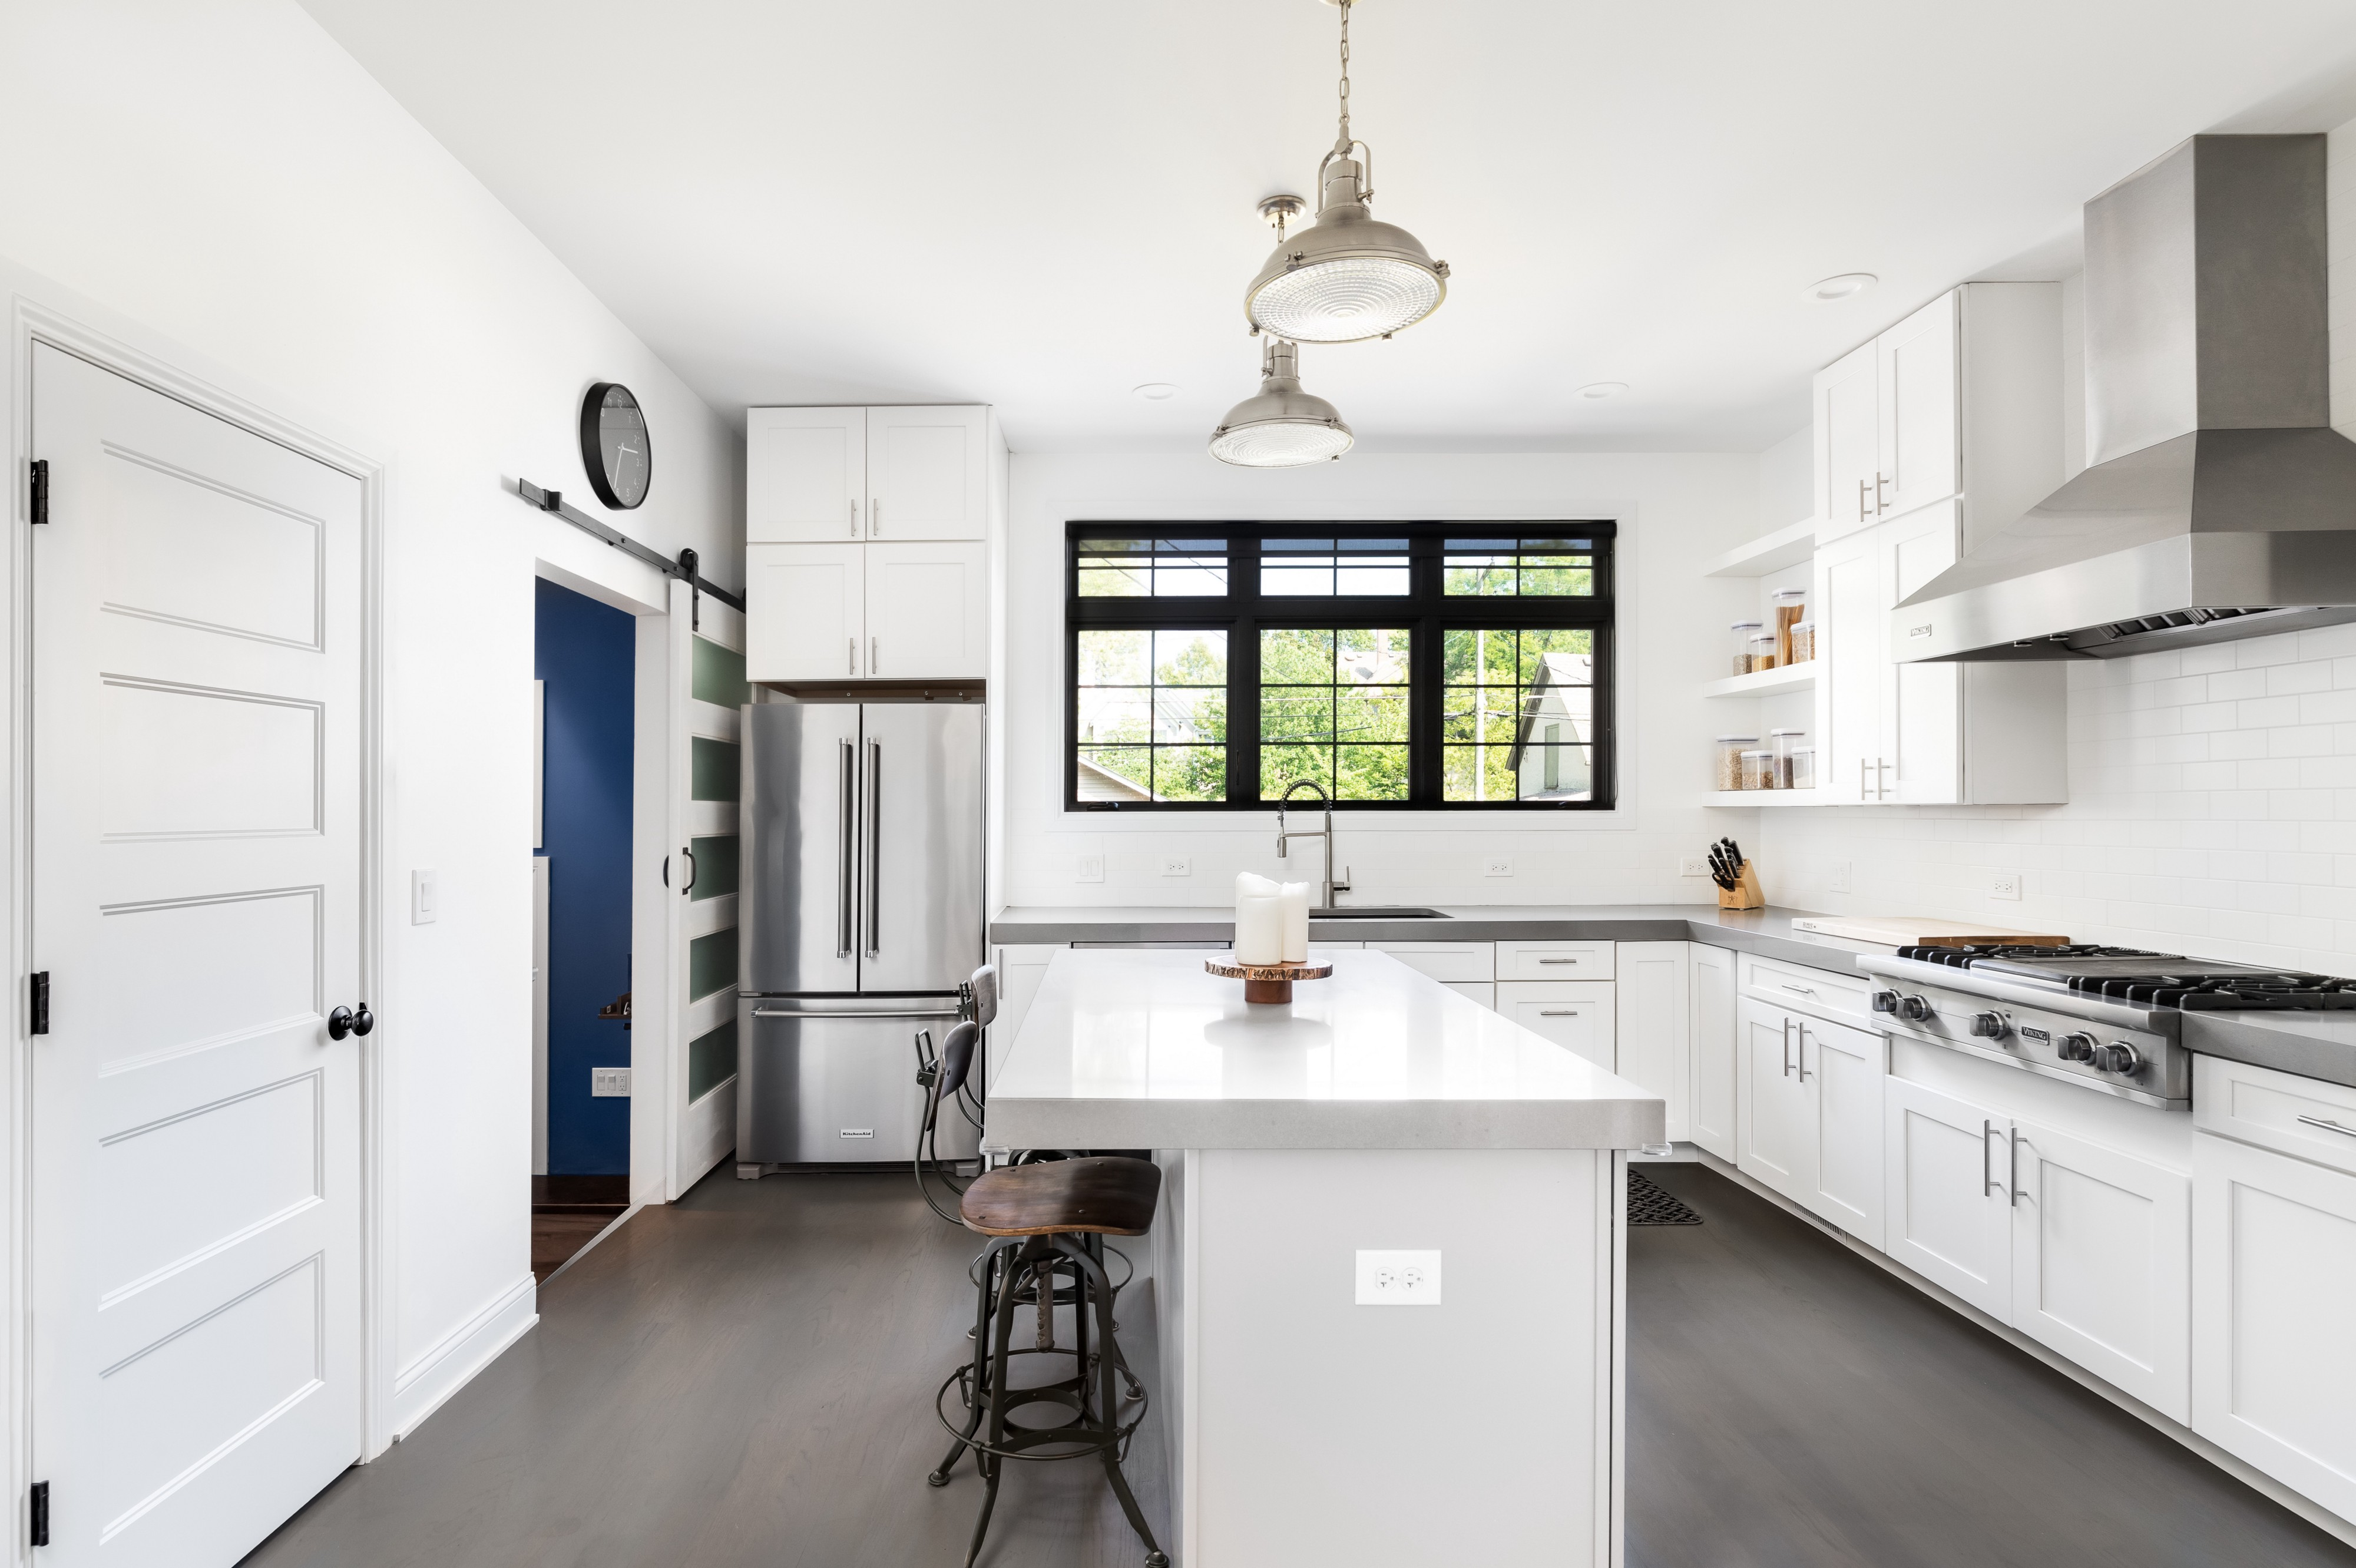 Why Rta Kitchen Cabinets Is A Good Choice For Your Kitchen By Seo Exprt Parizat Feb 2021 Medium